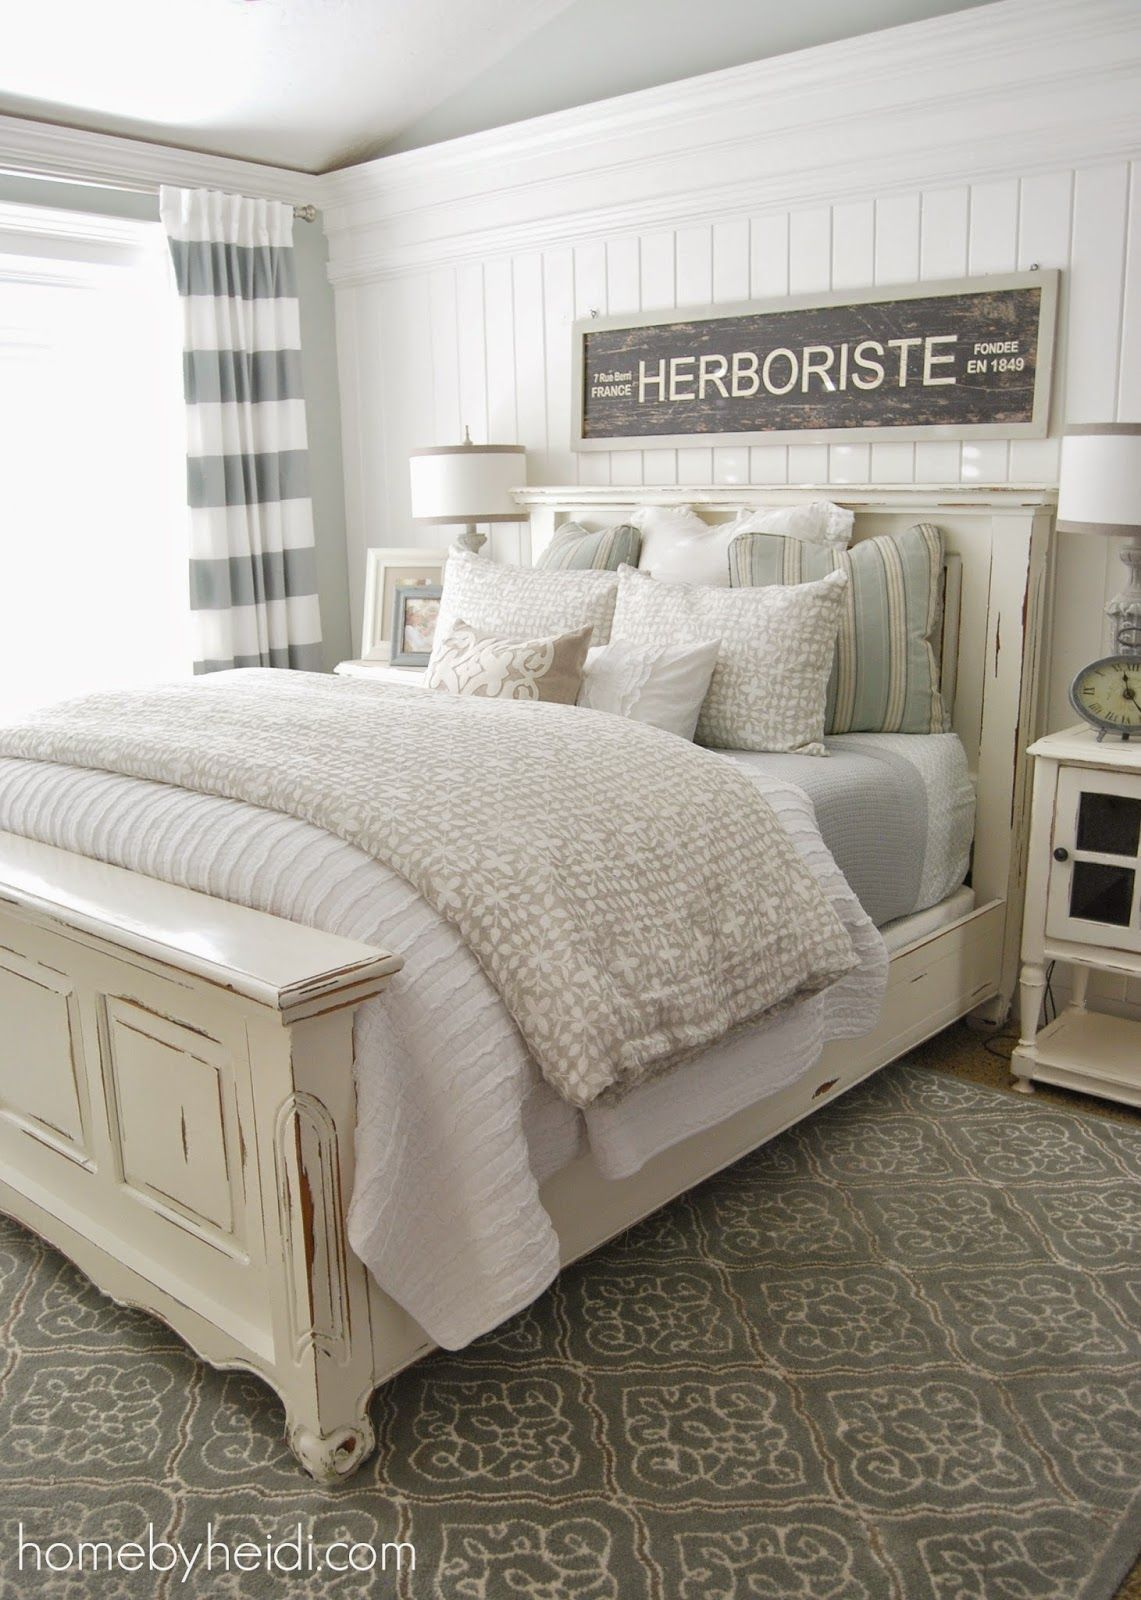 10 Ways to Make Your Bedroom More Romantic images